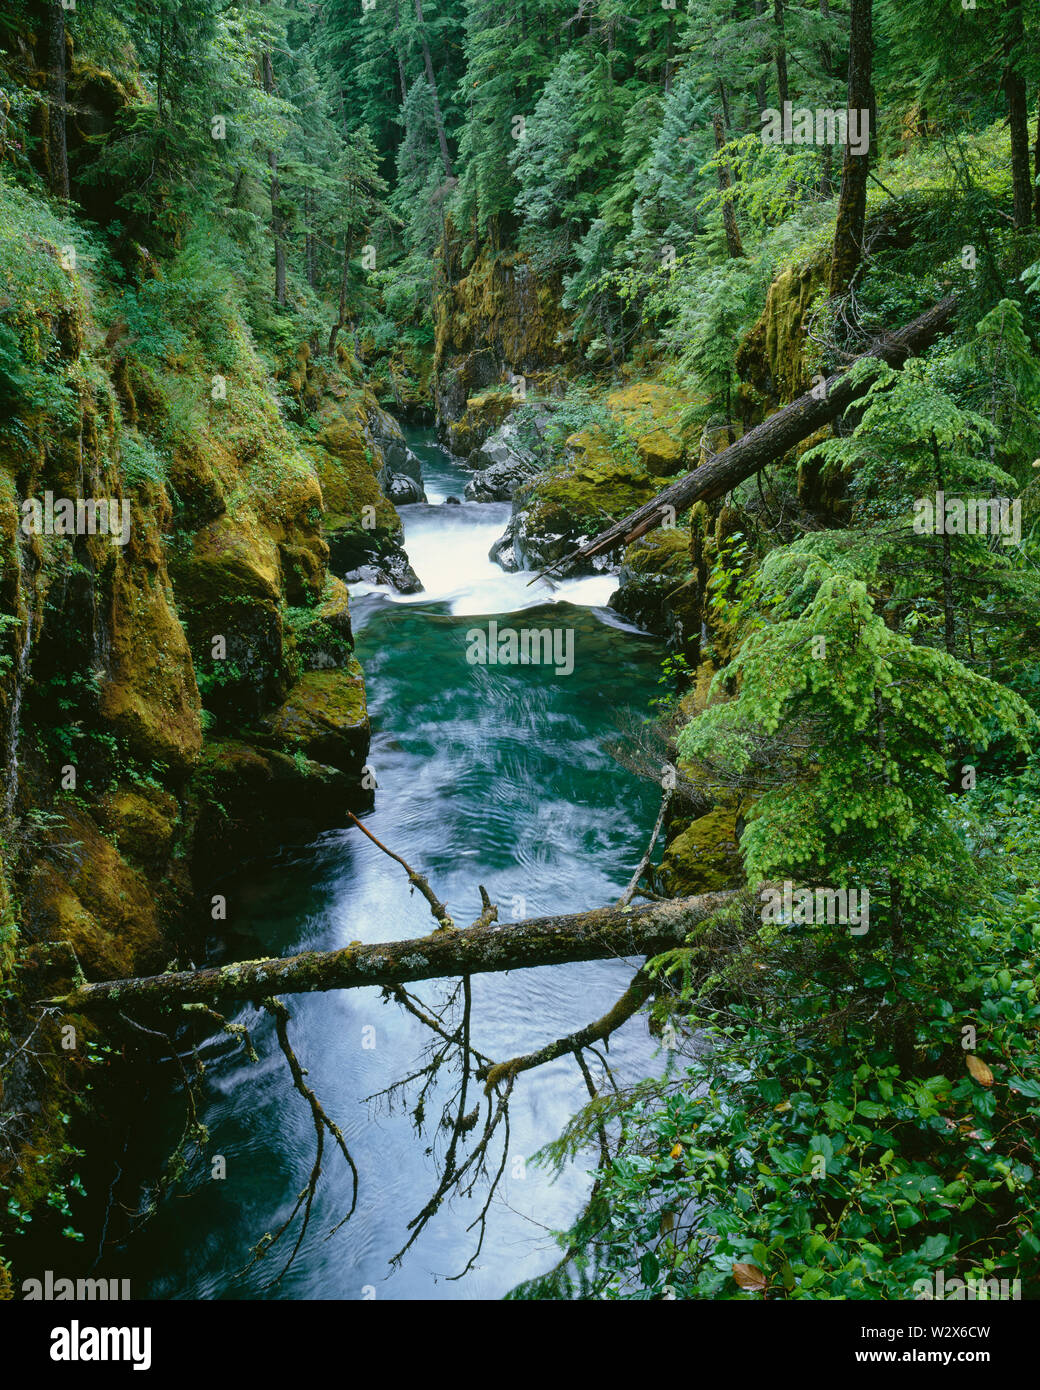 USA, Washington, Mt. Rainier National Park, Conifers cling to steep slopes above the Ohanepecosh River in Ohanepecosh Gorge. - Stock Image